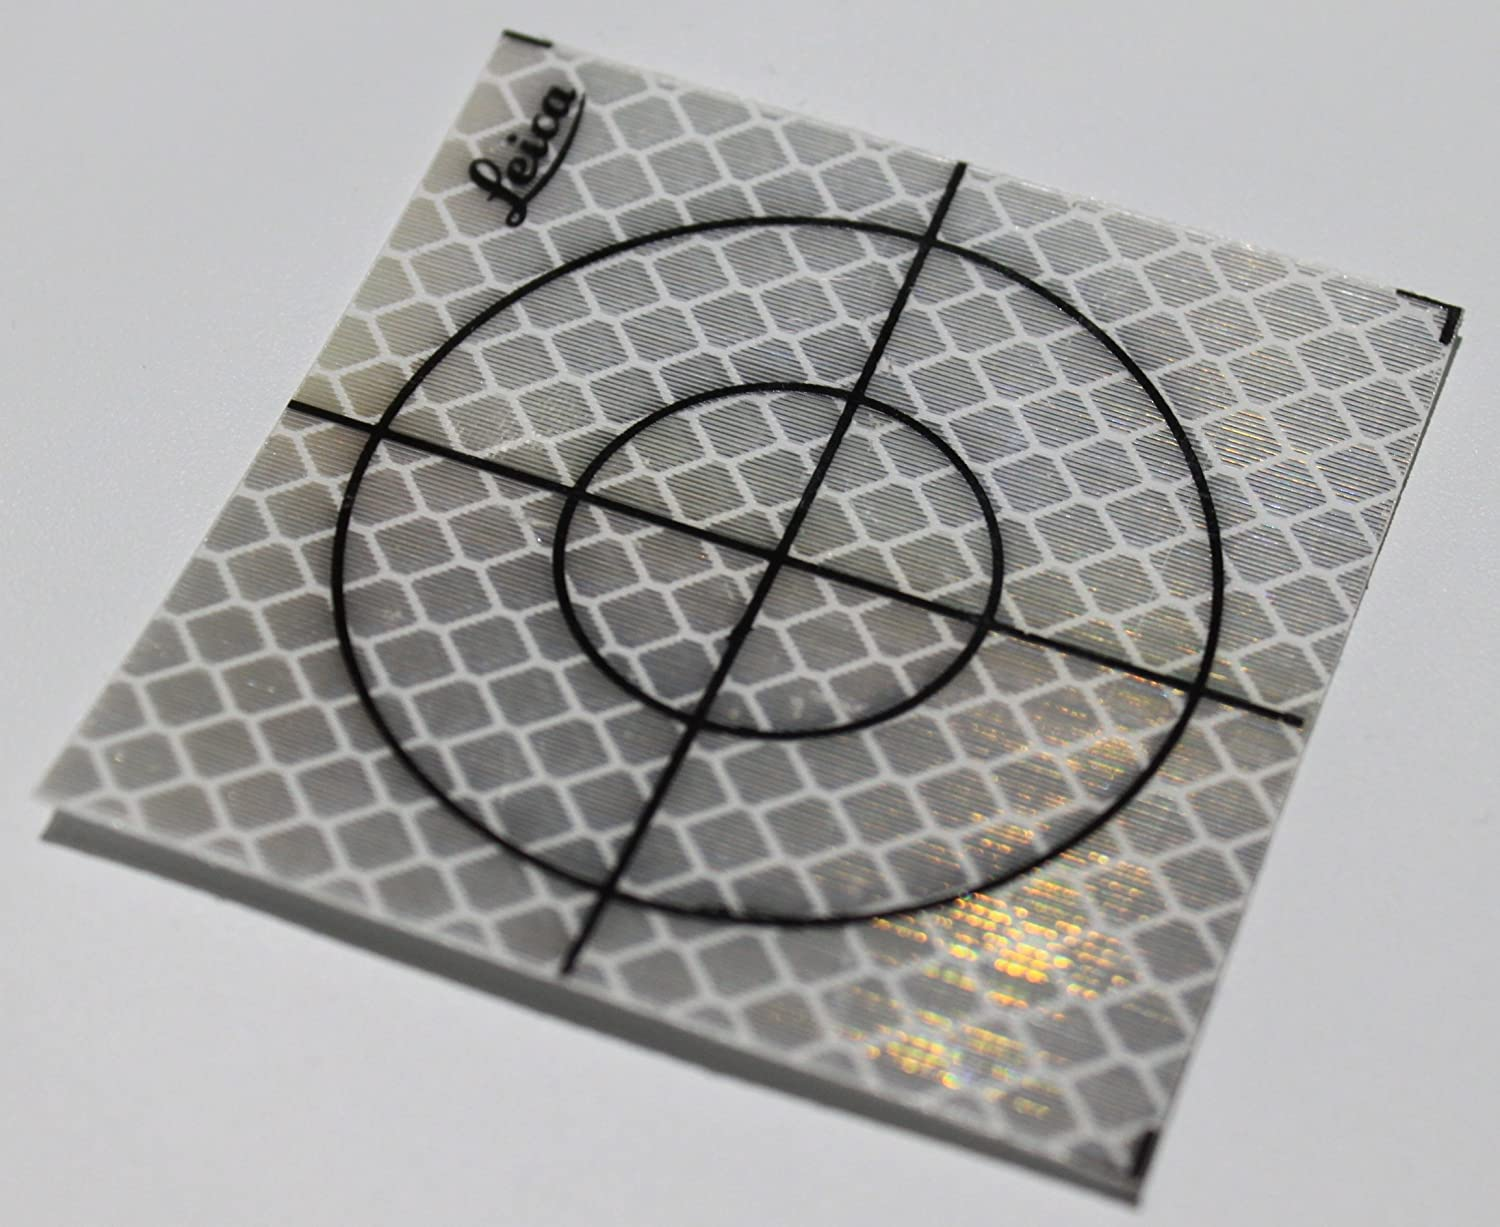 30X30mm Reflective Tape Survey Targets 20 Pack